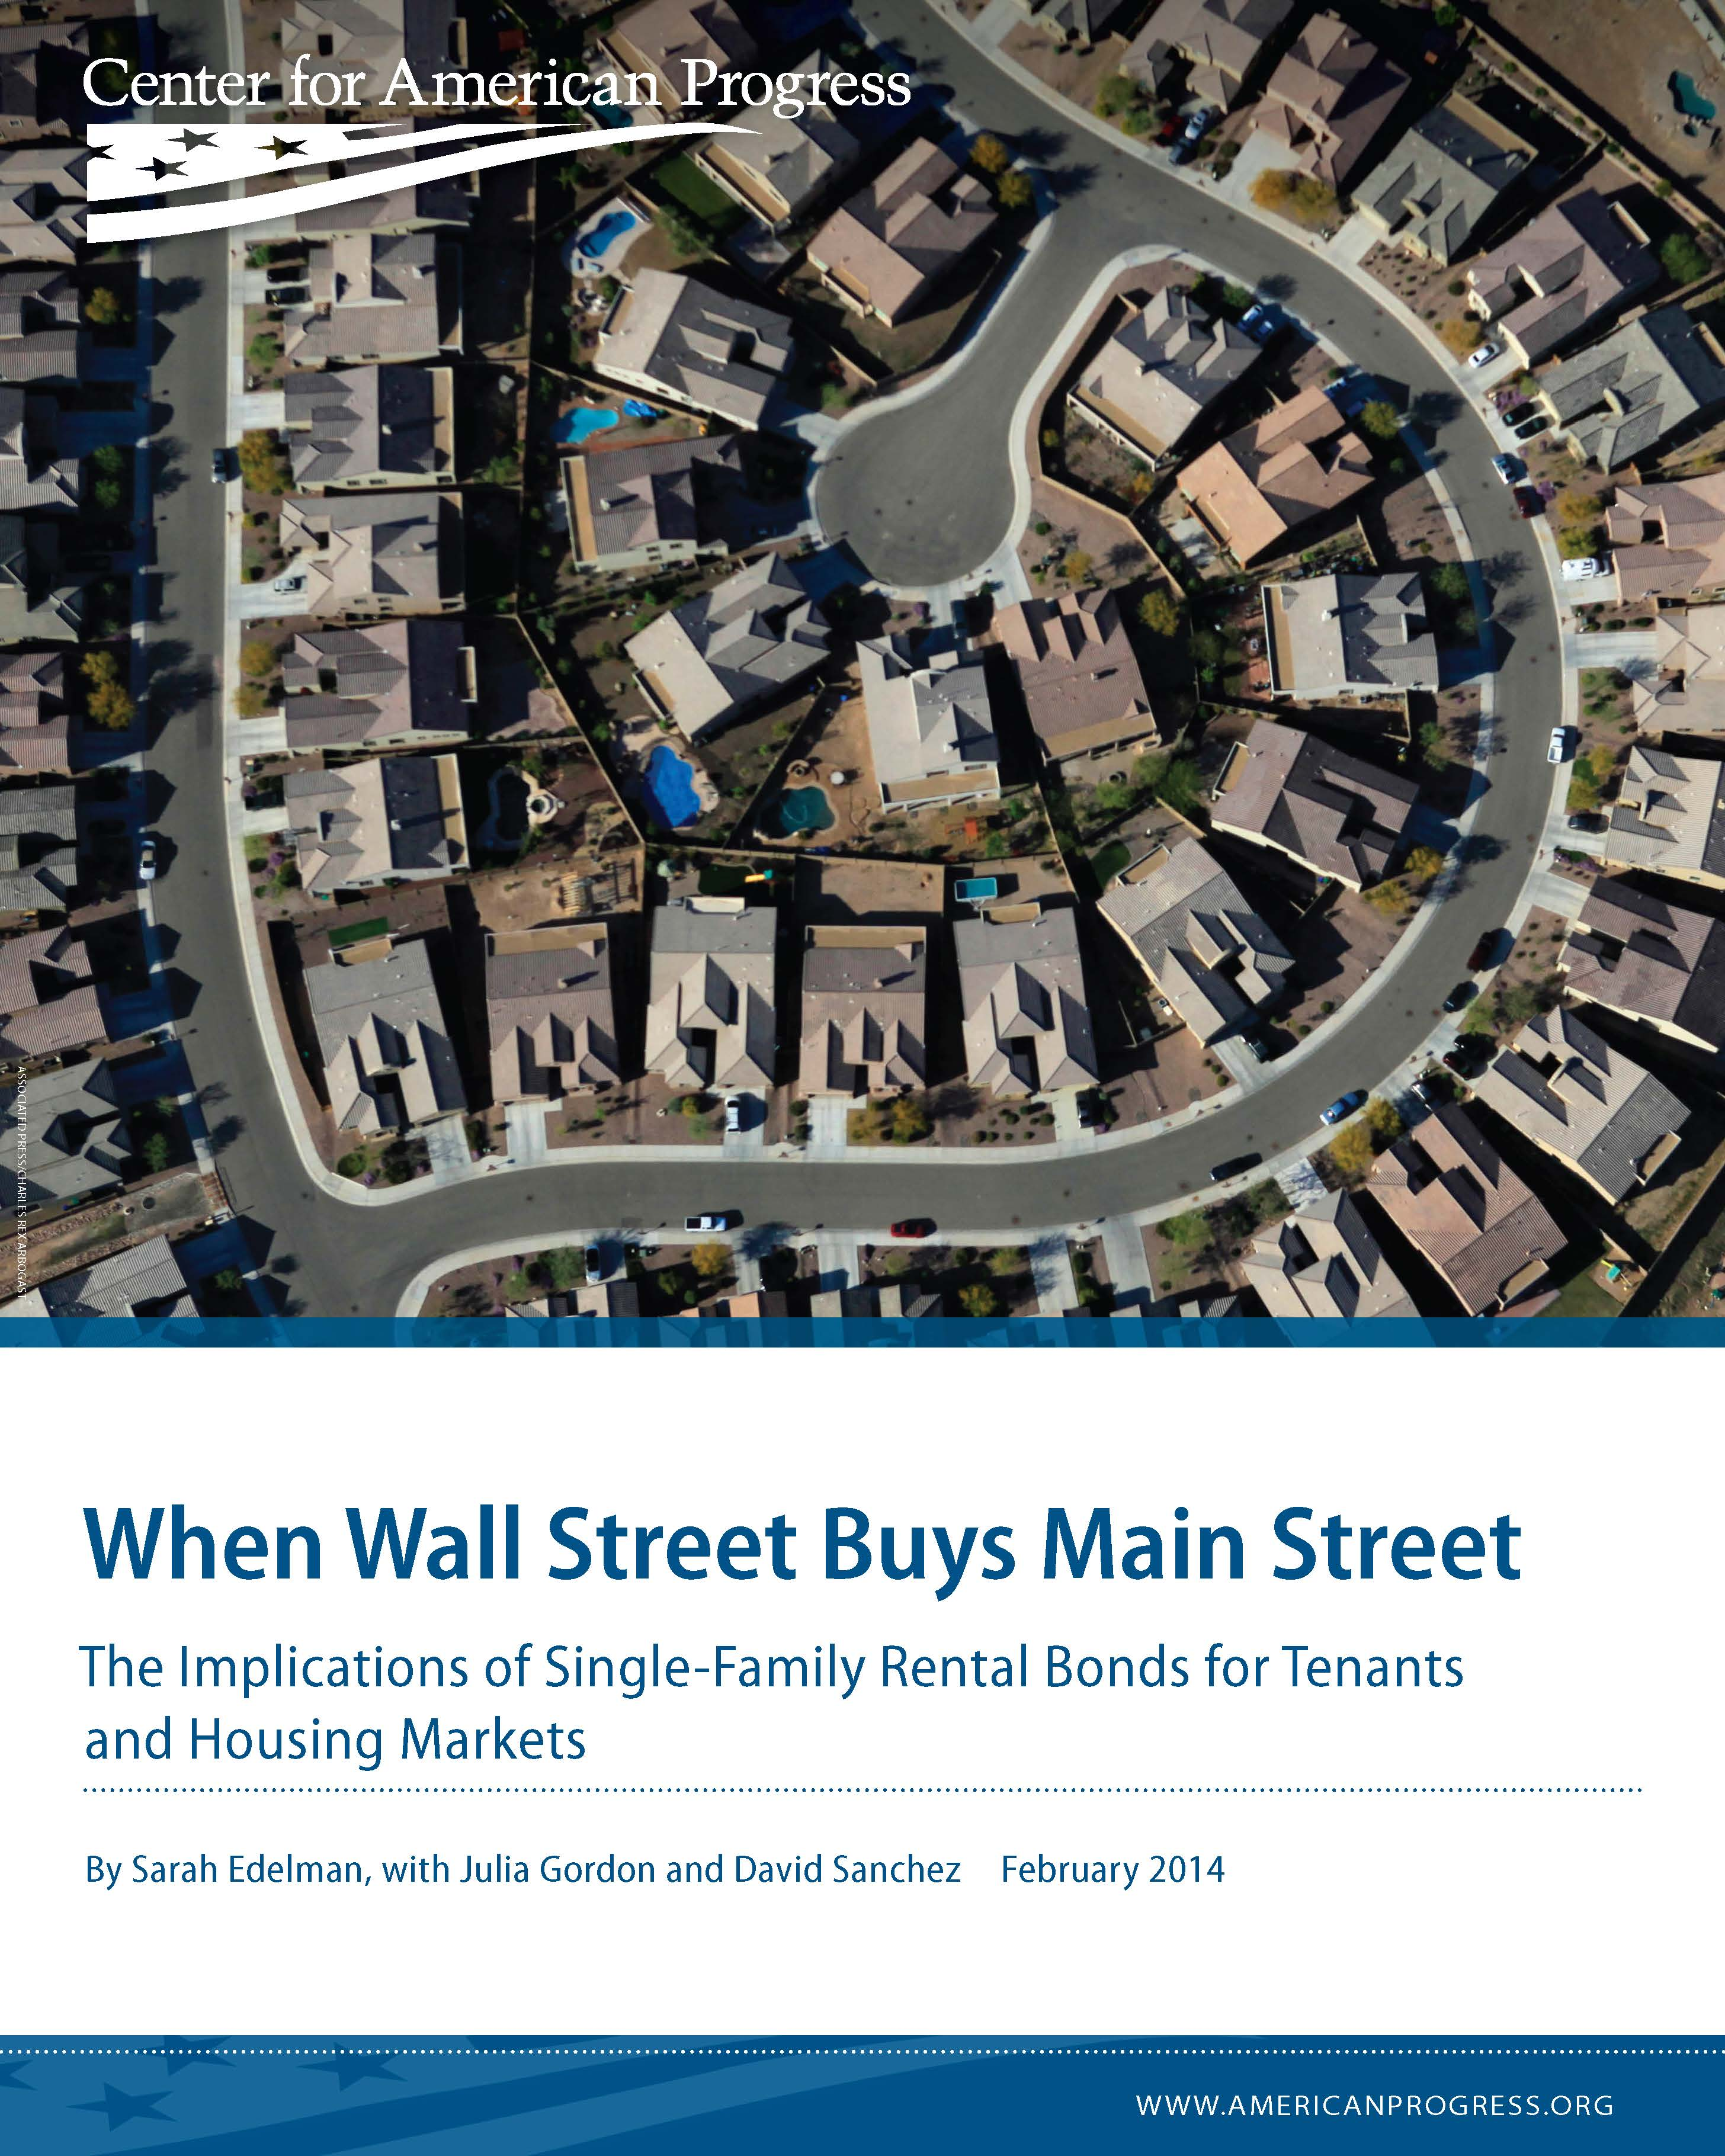 When Wall Street Buys Main Street